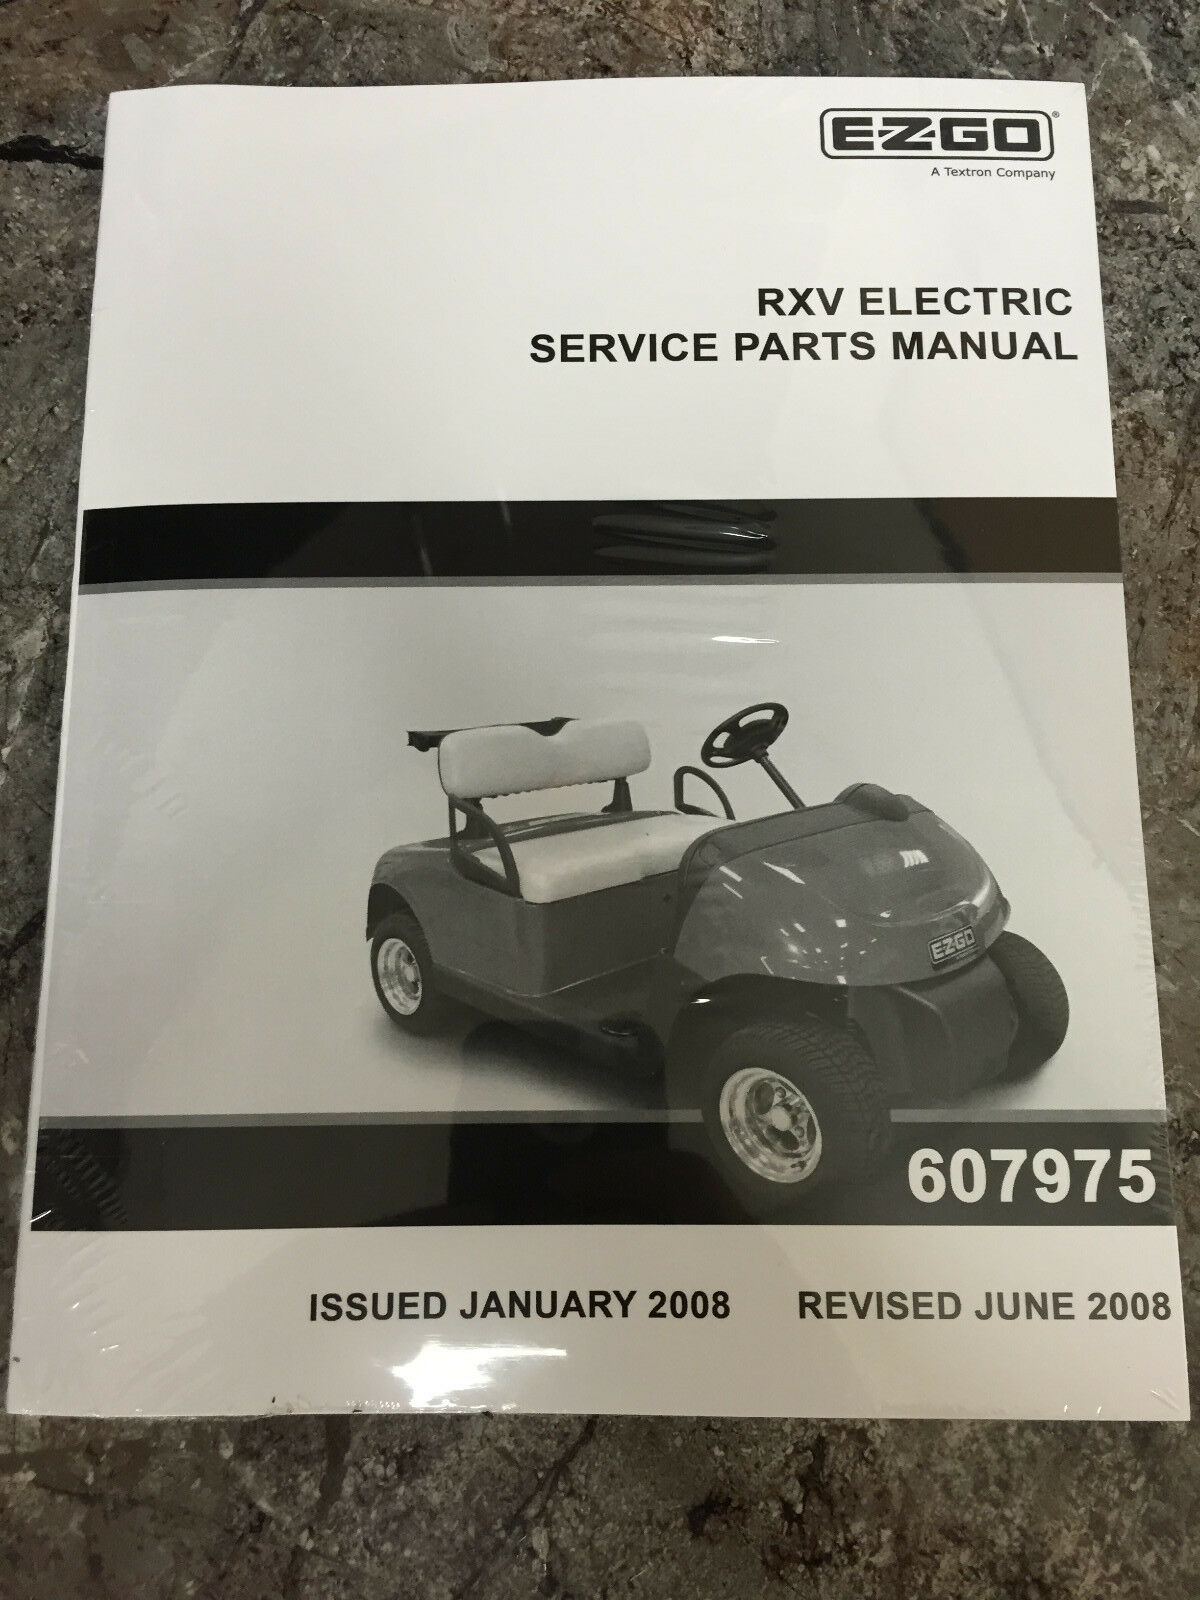 ez go golf cart part rxv electric service parts manual 607975 ebay rh ebay com ezgo rxv electric service & repair manual Ezgo TXT Golf Cart